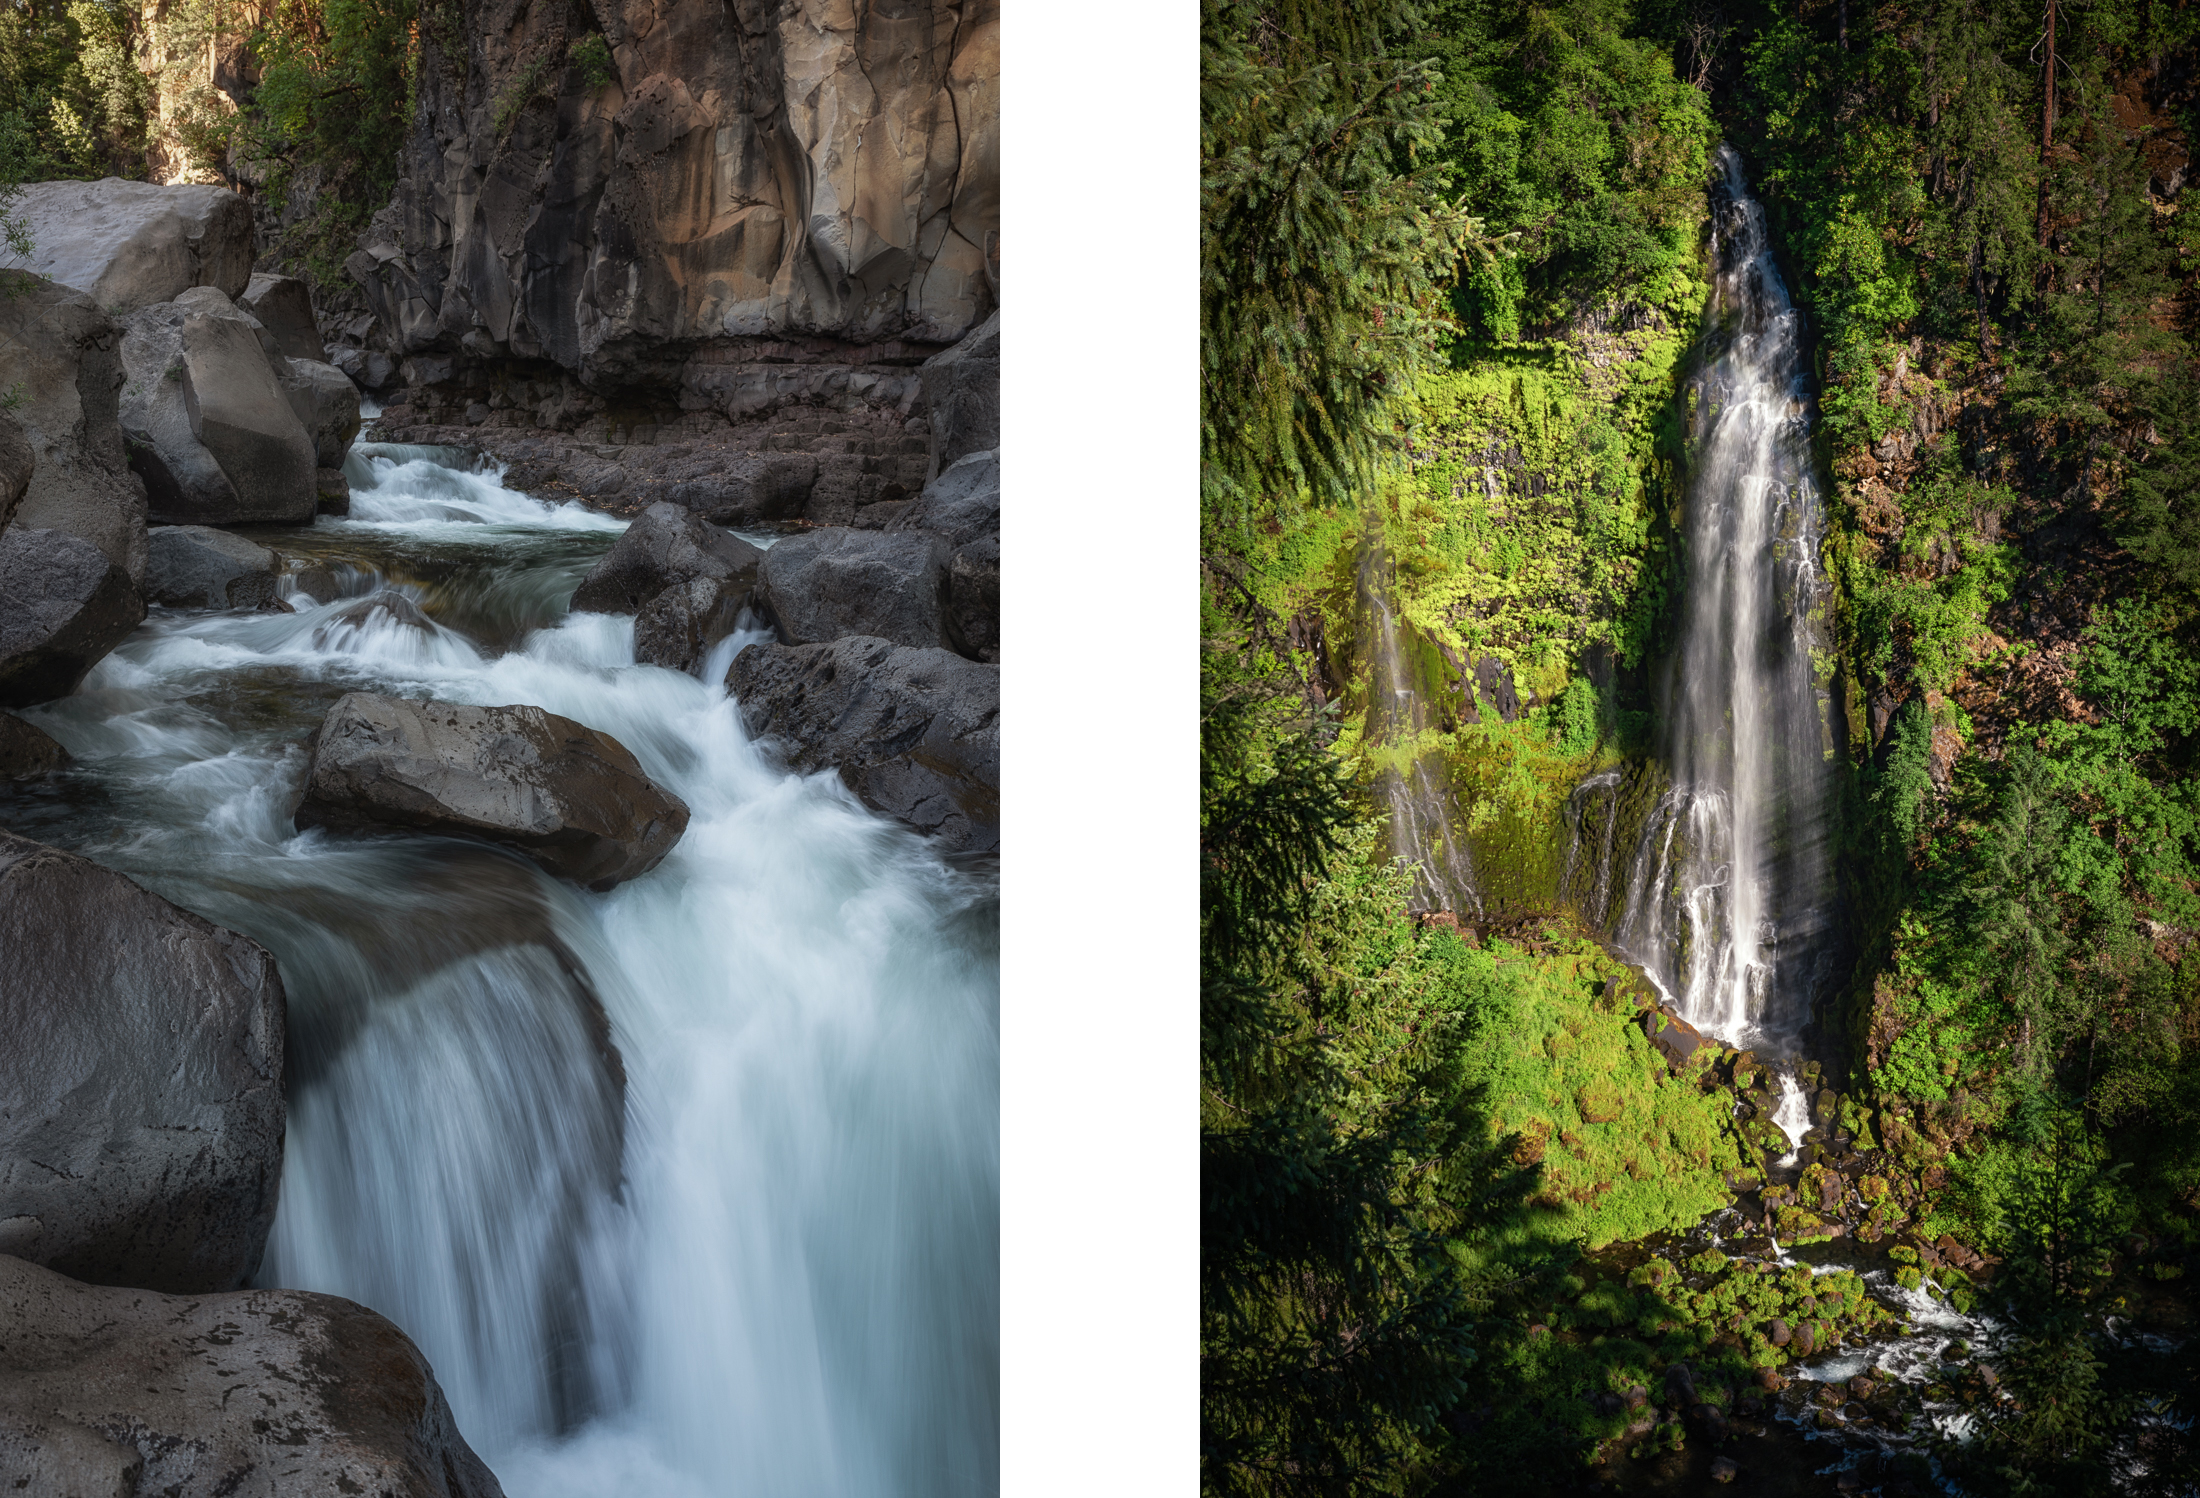 Rogue River Rapids and Barr Creek Falls in warm yet challenging light